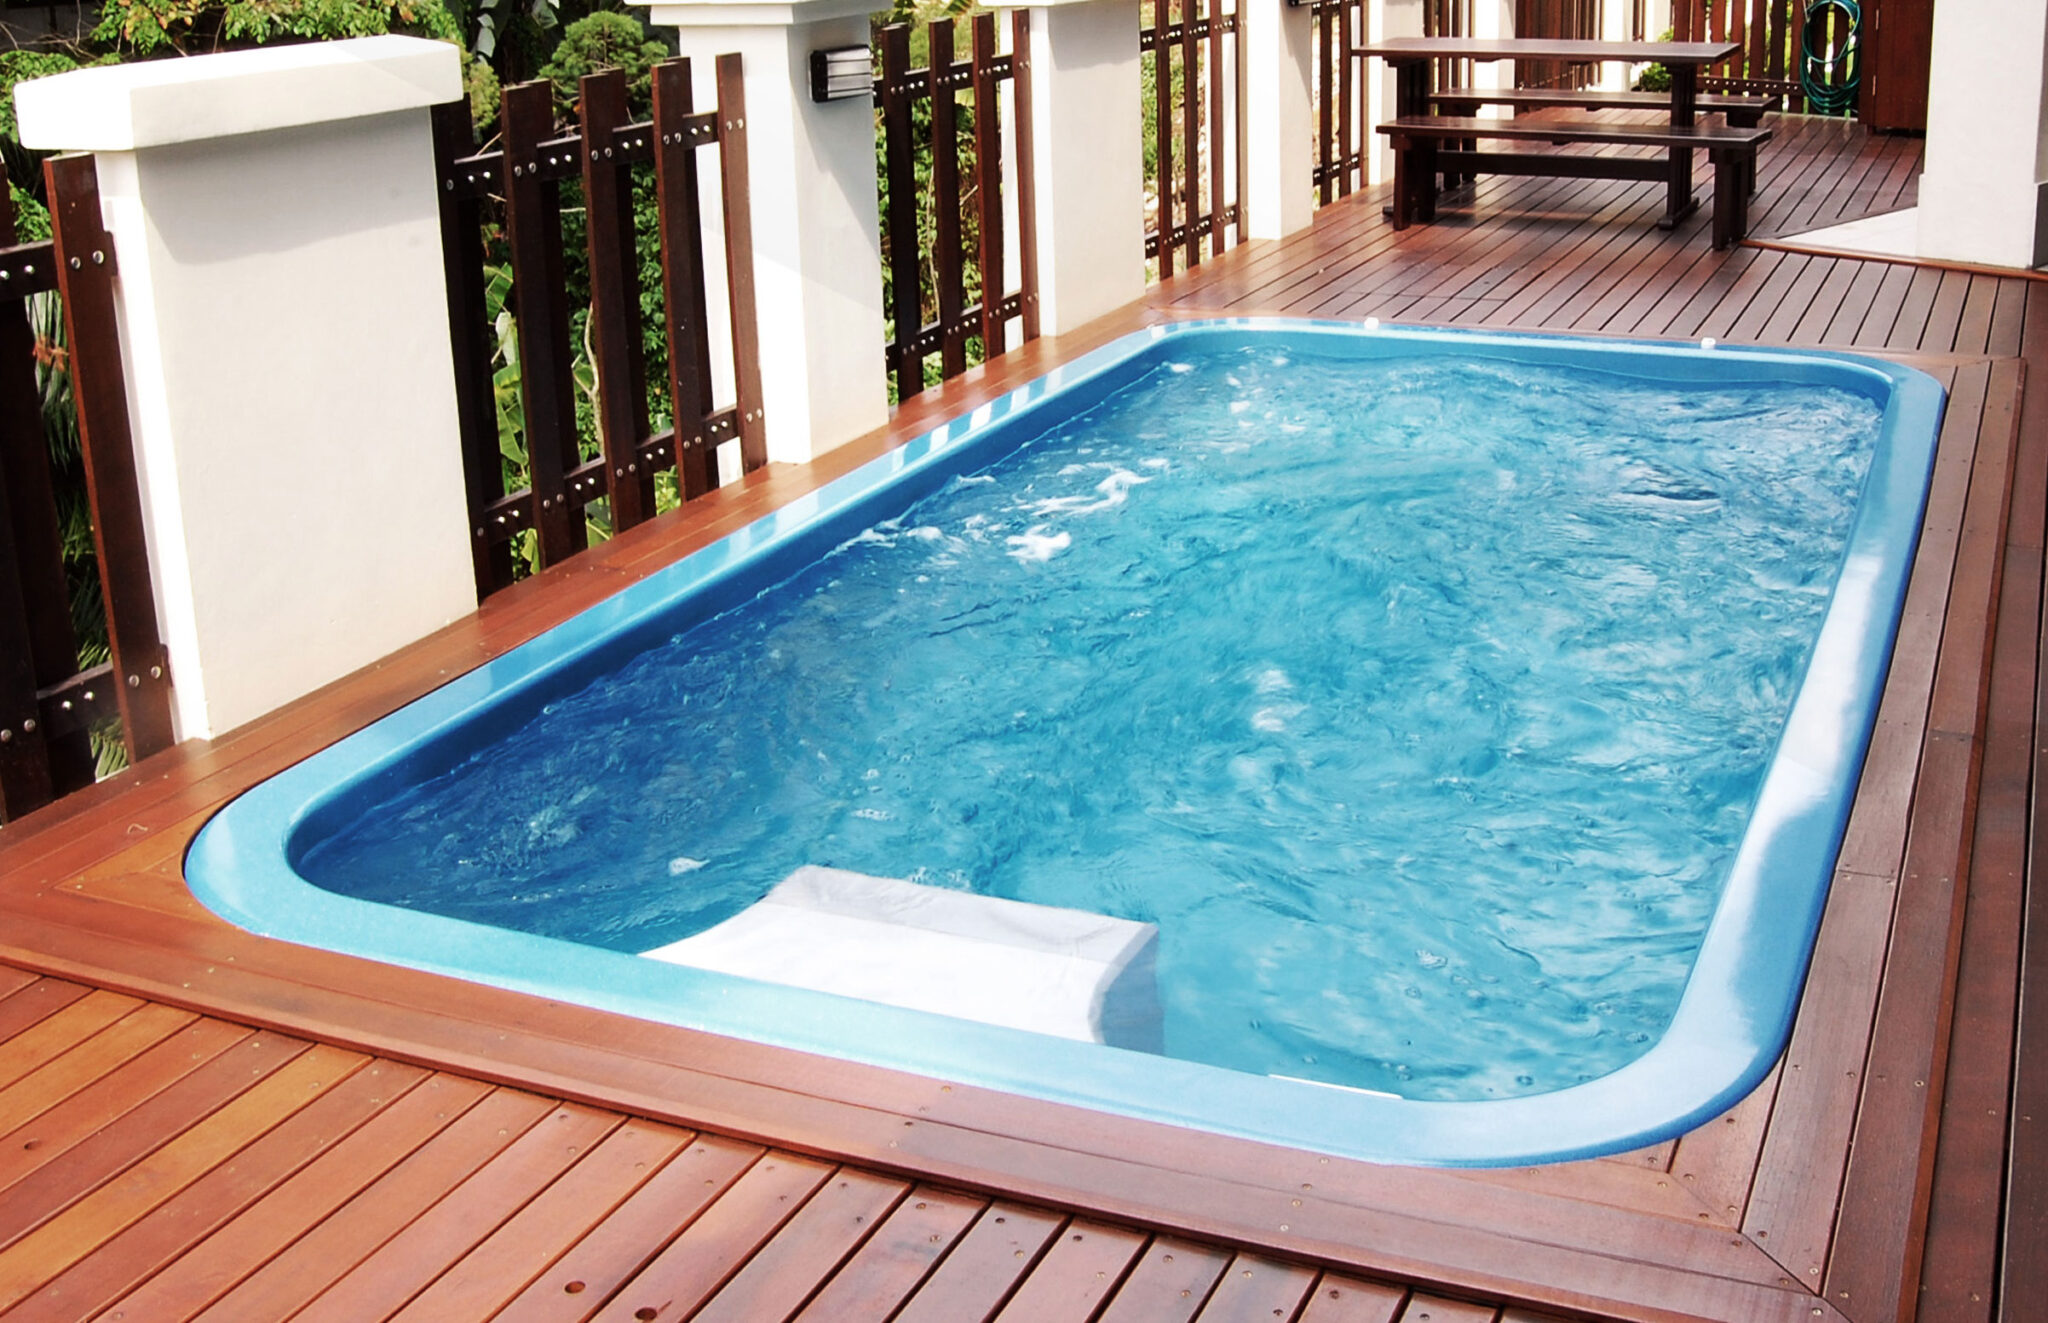 6 Reasons Why Smart Pools Are A Great Way To Boost Your Fitness in 2021